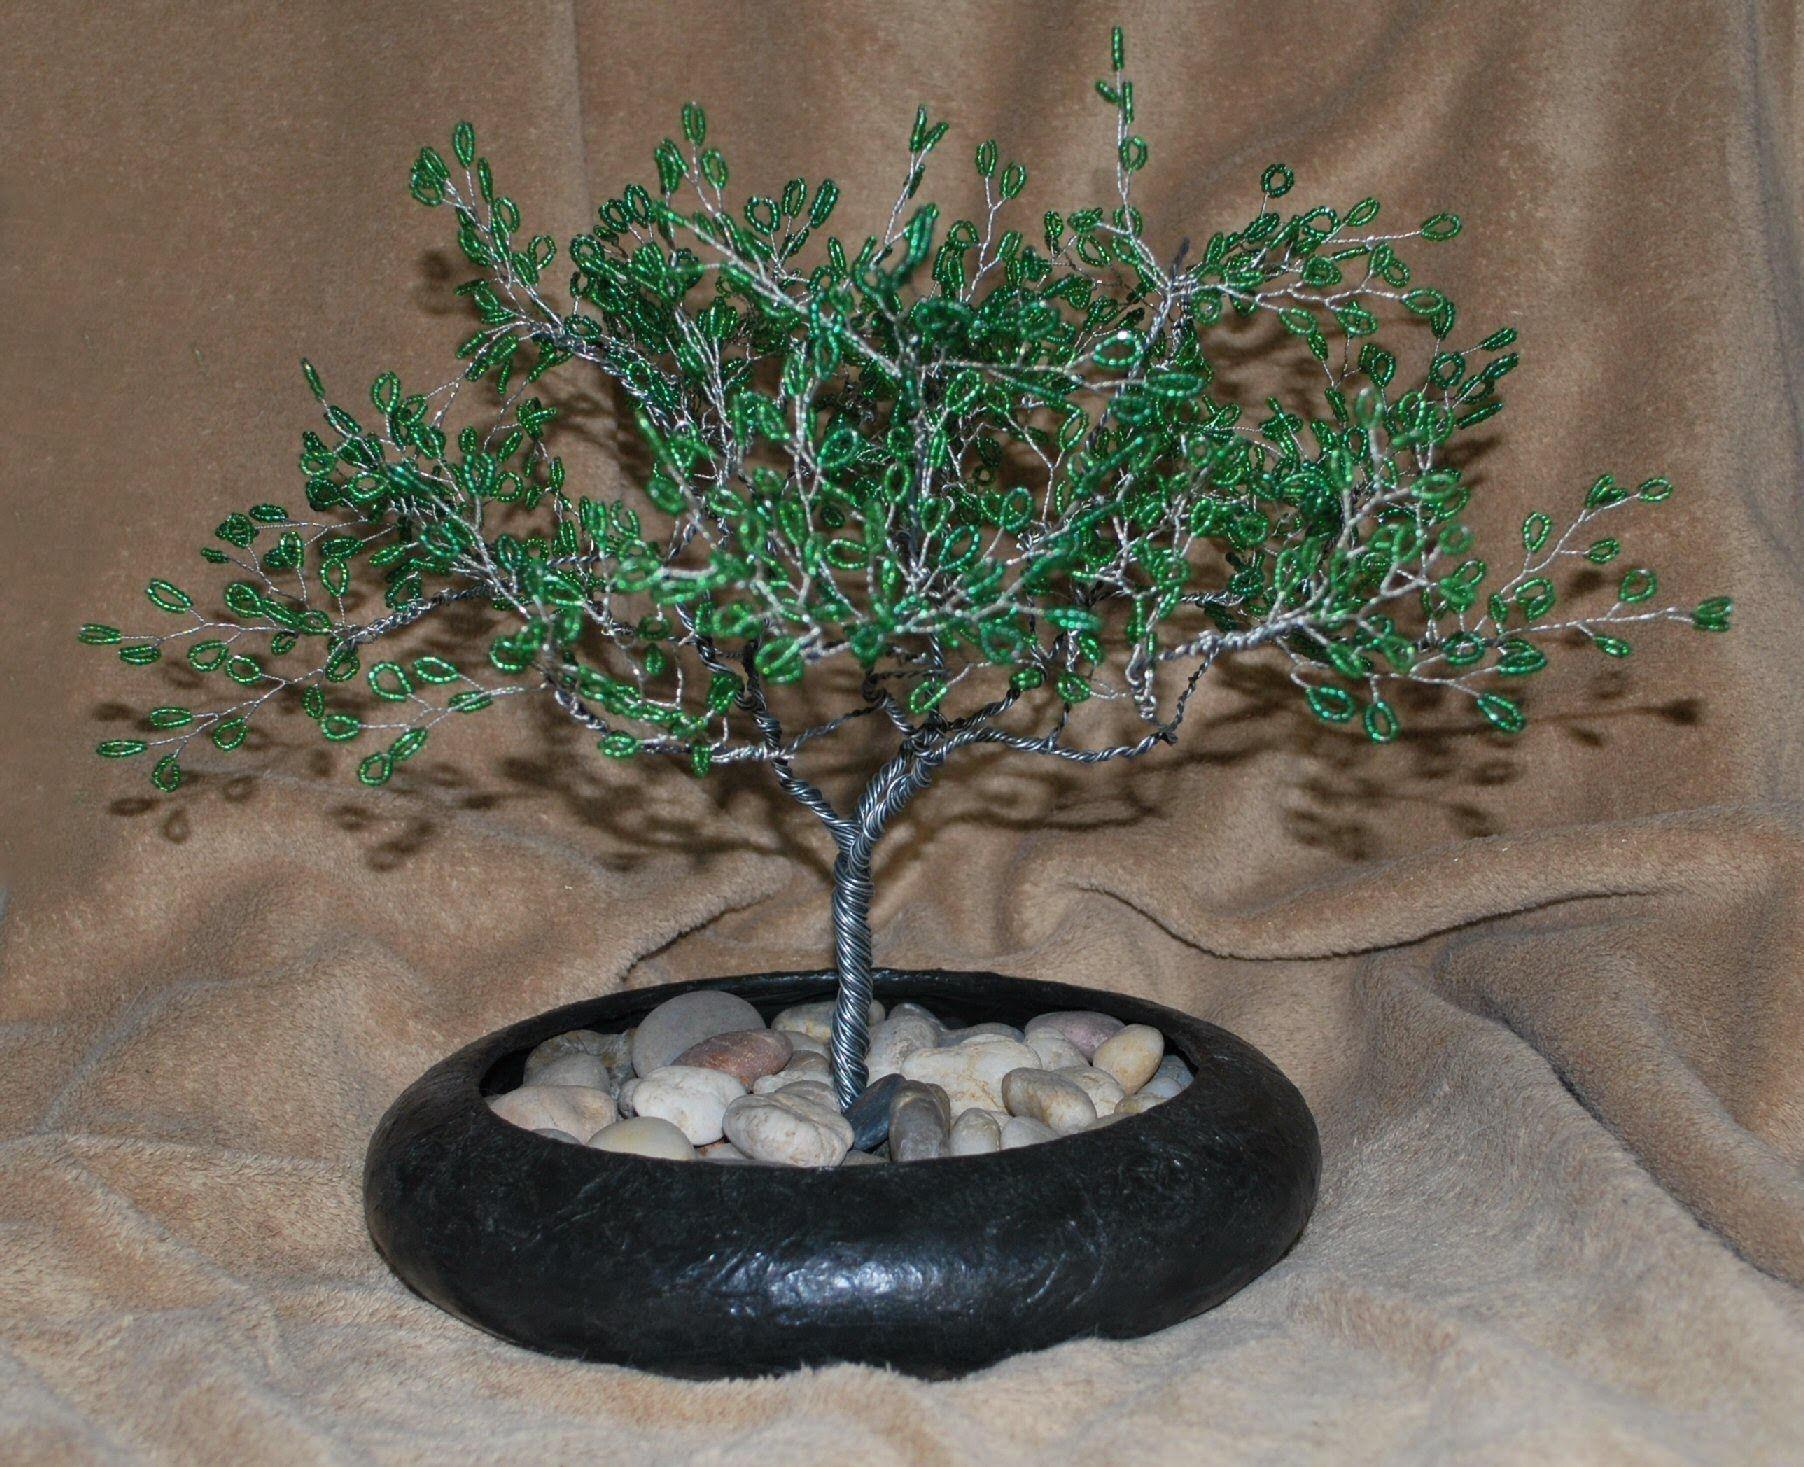 For The Tree And Branches I Use 20 Gauge Wire From A Roll Wiring Your Bonsai F333ba0605ae86be47d224fc48f0c7dd